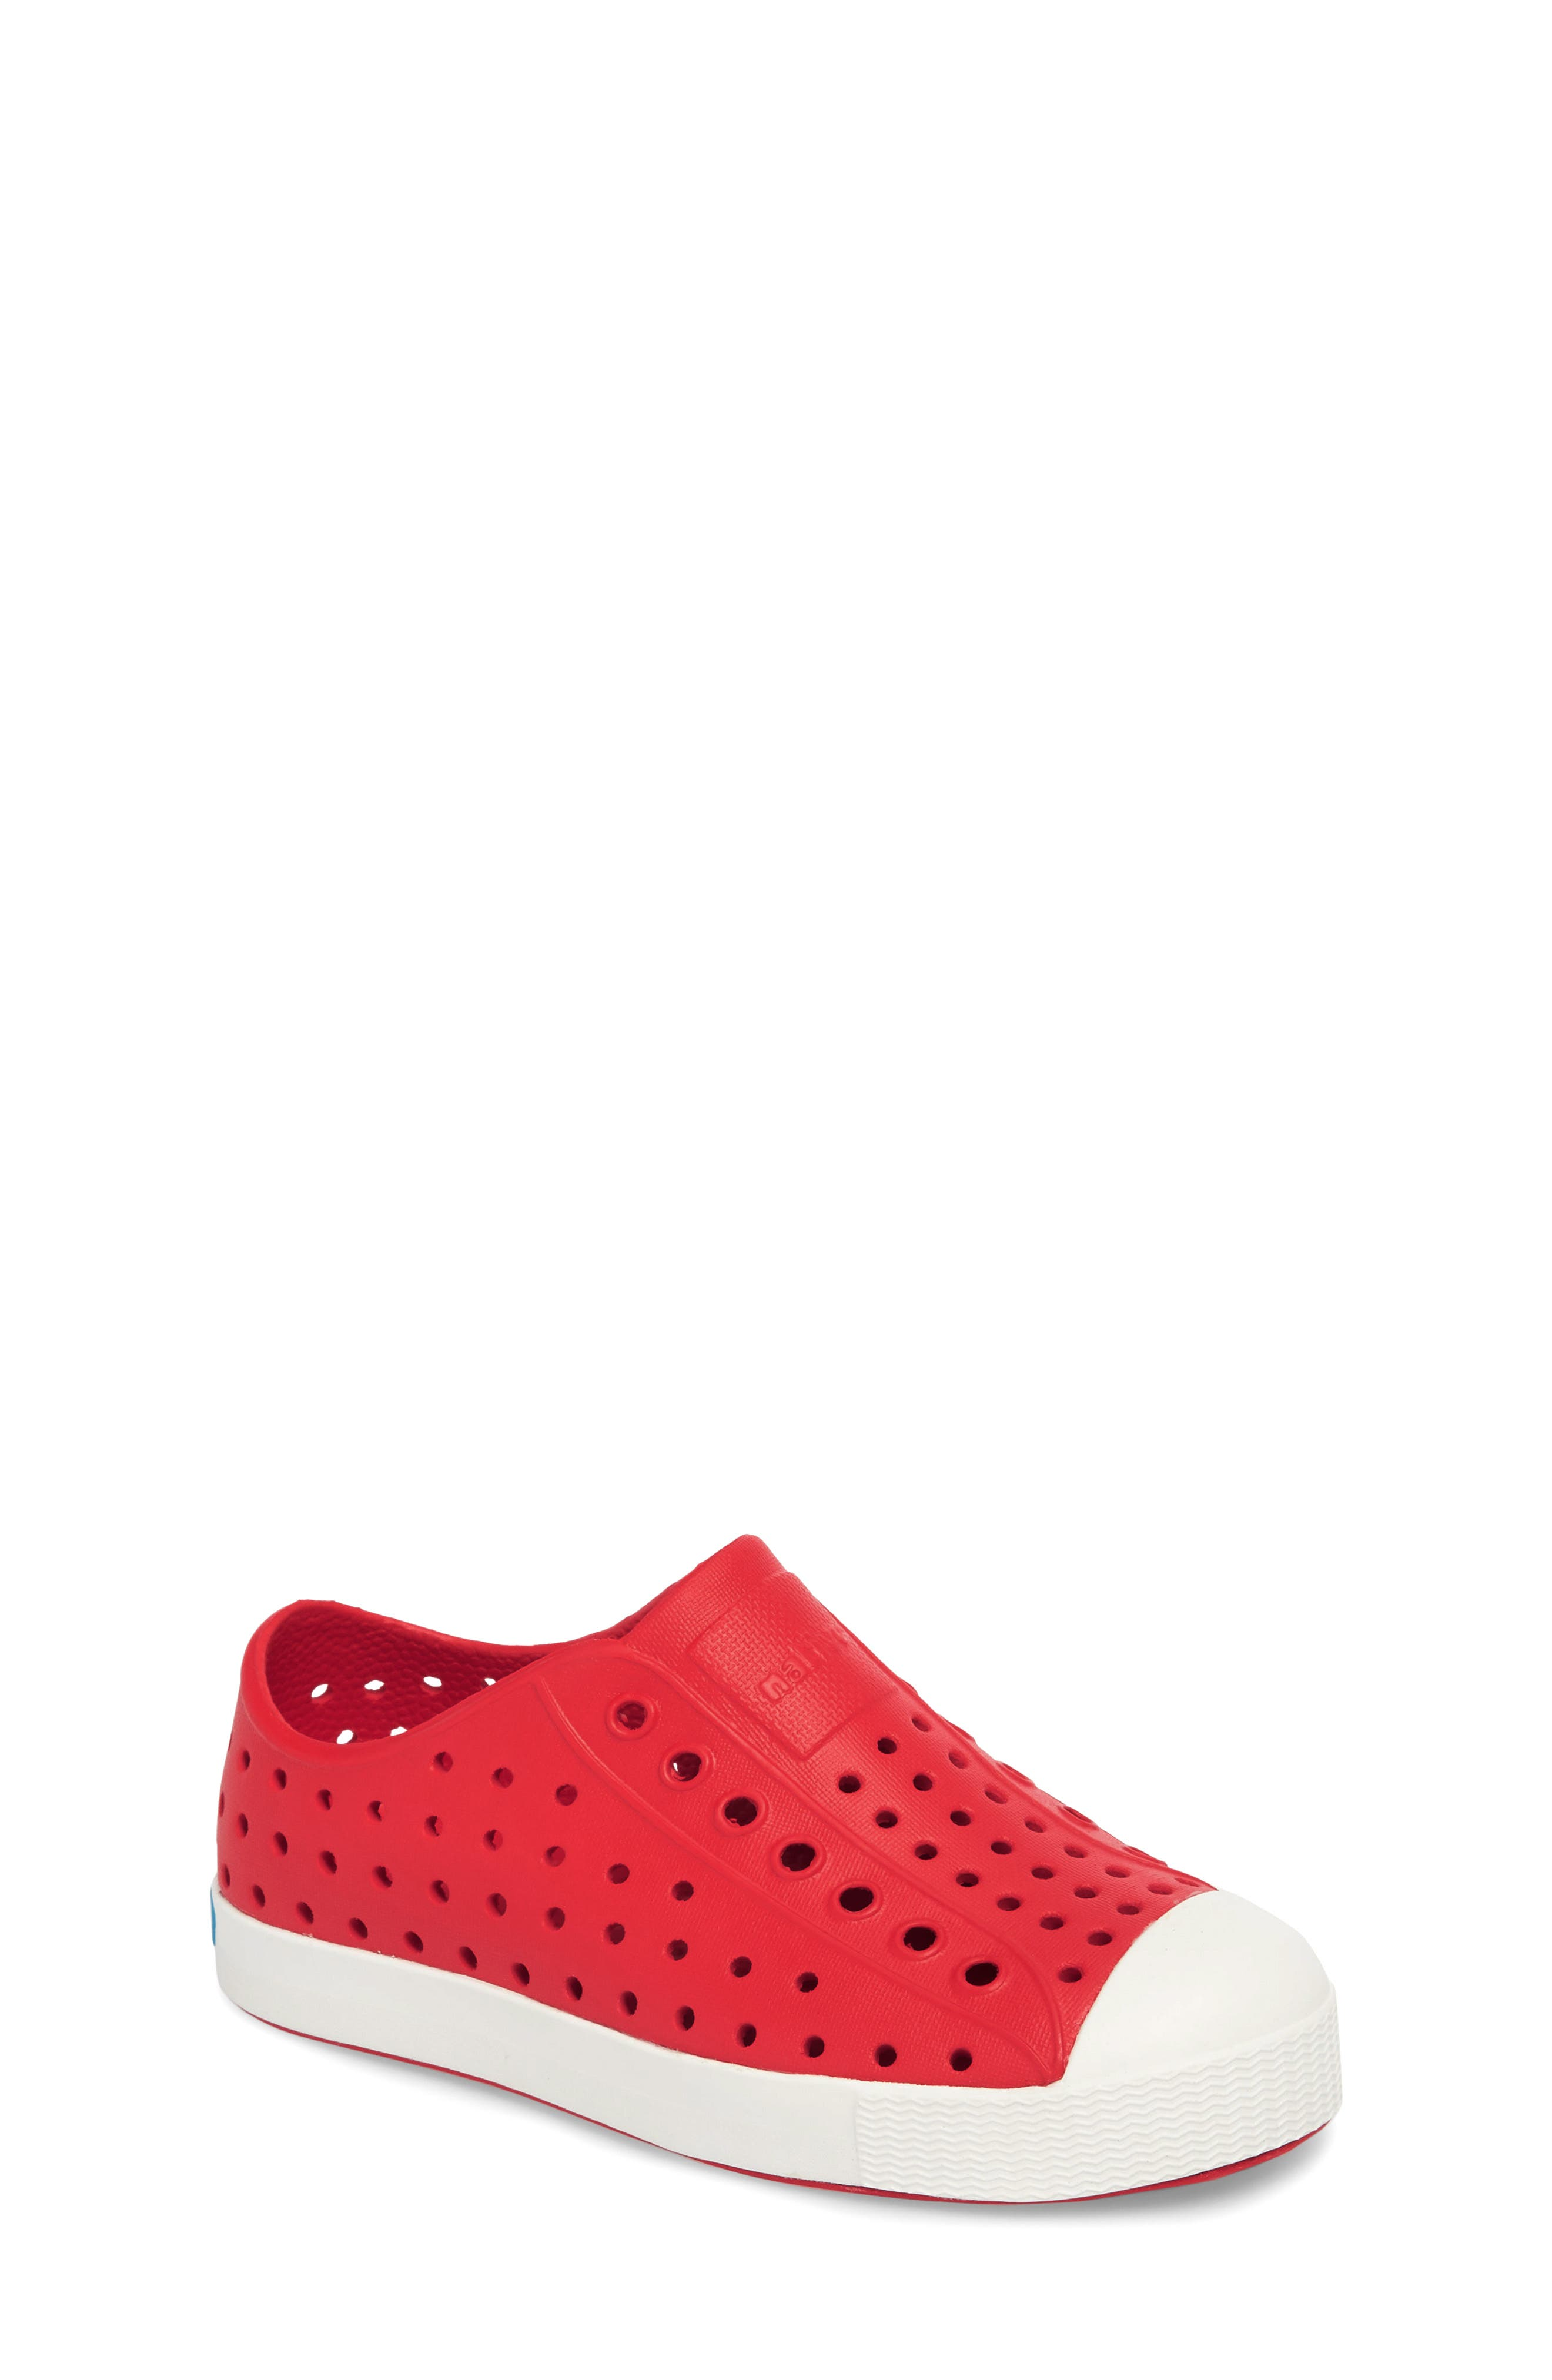 NATIVE SHOES, Jefferson Water Friendly Slip-On Vegan Sneaker, Main thumbnail 1, color, TORCH RED/ SHELL WHITE